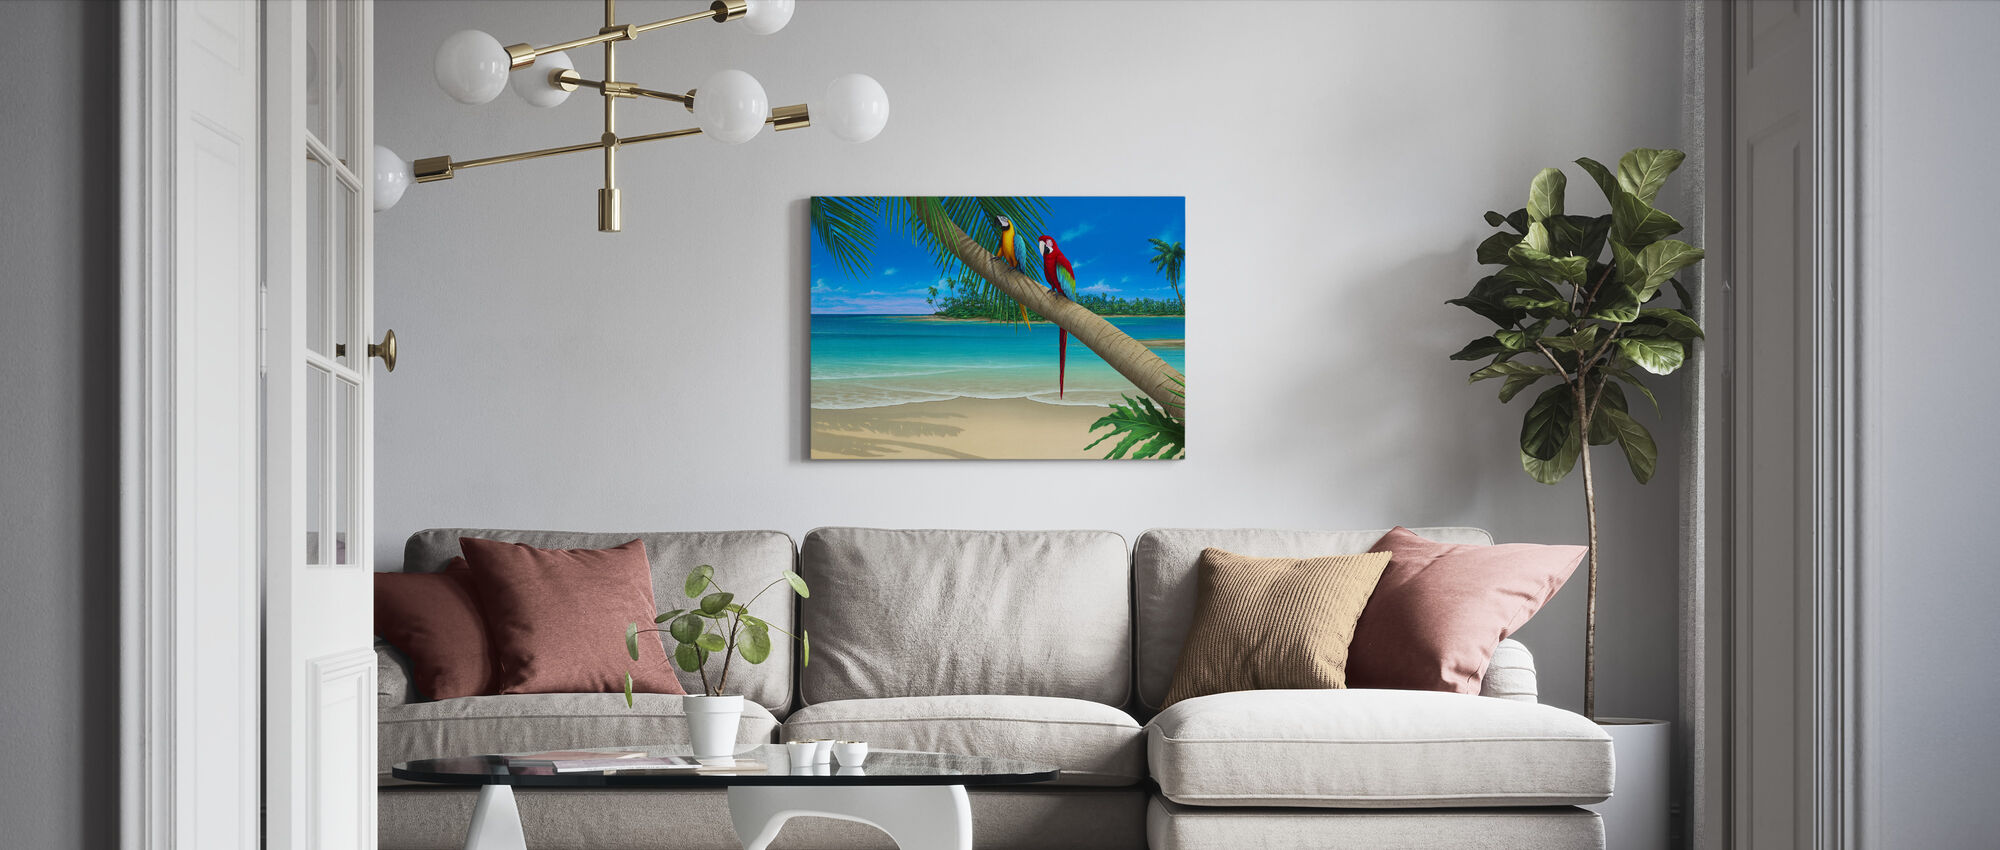 A Perfect Day II - Canvas print - Living Room